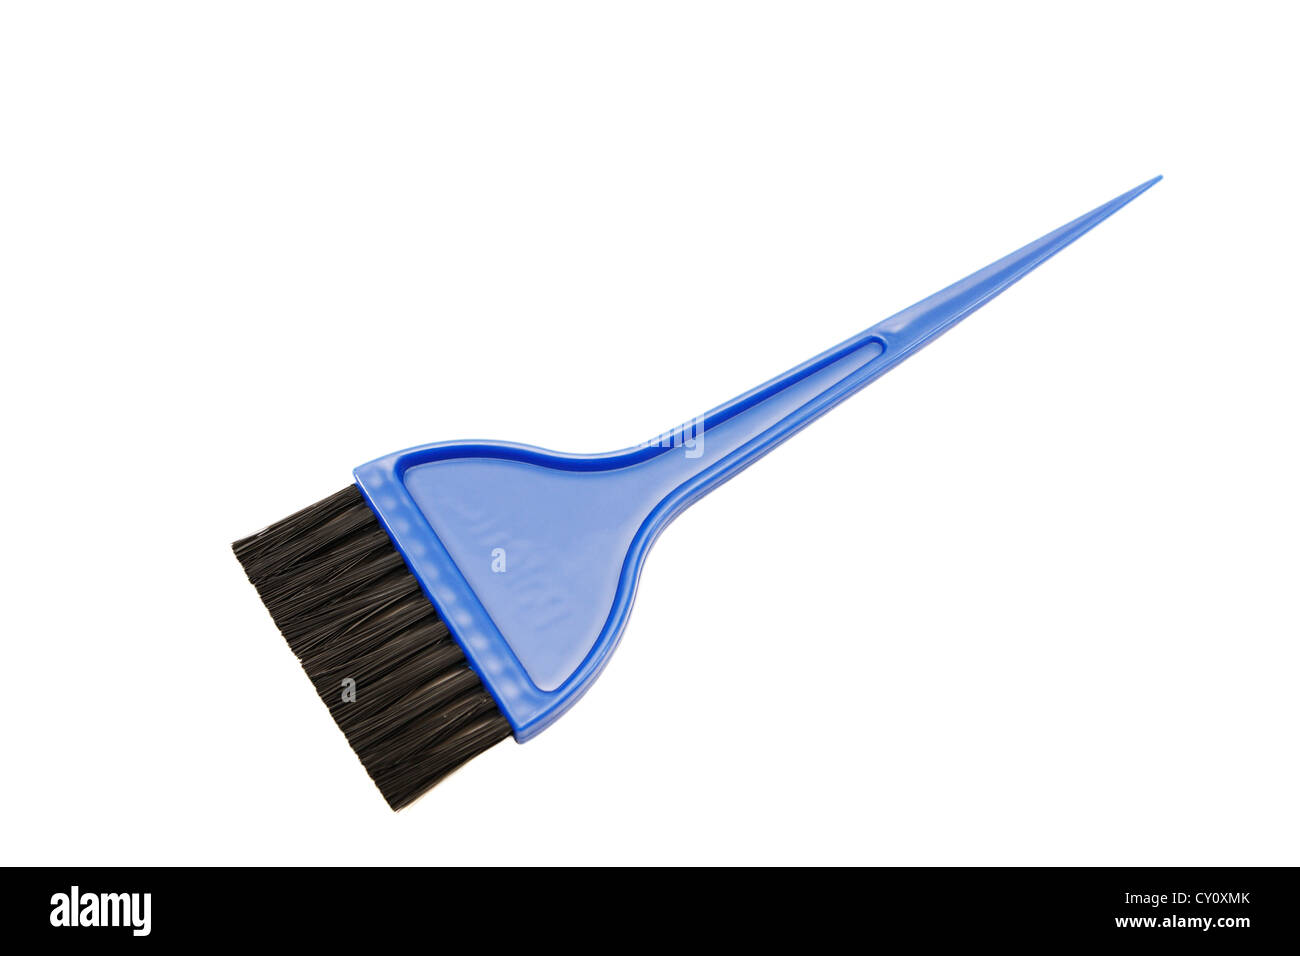 Hair Dye Brush Cut Out Stock Images & Pictures - Alamy